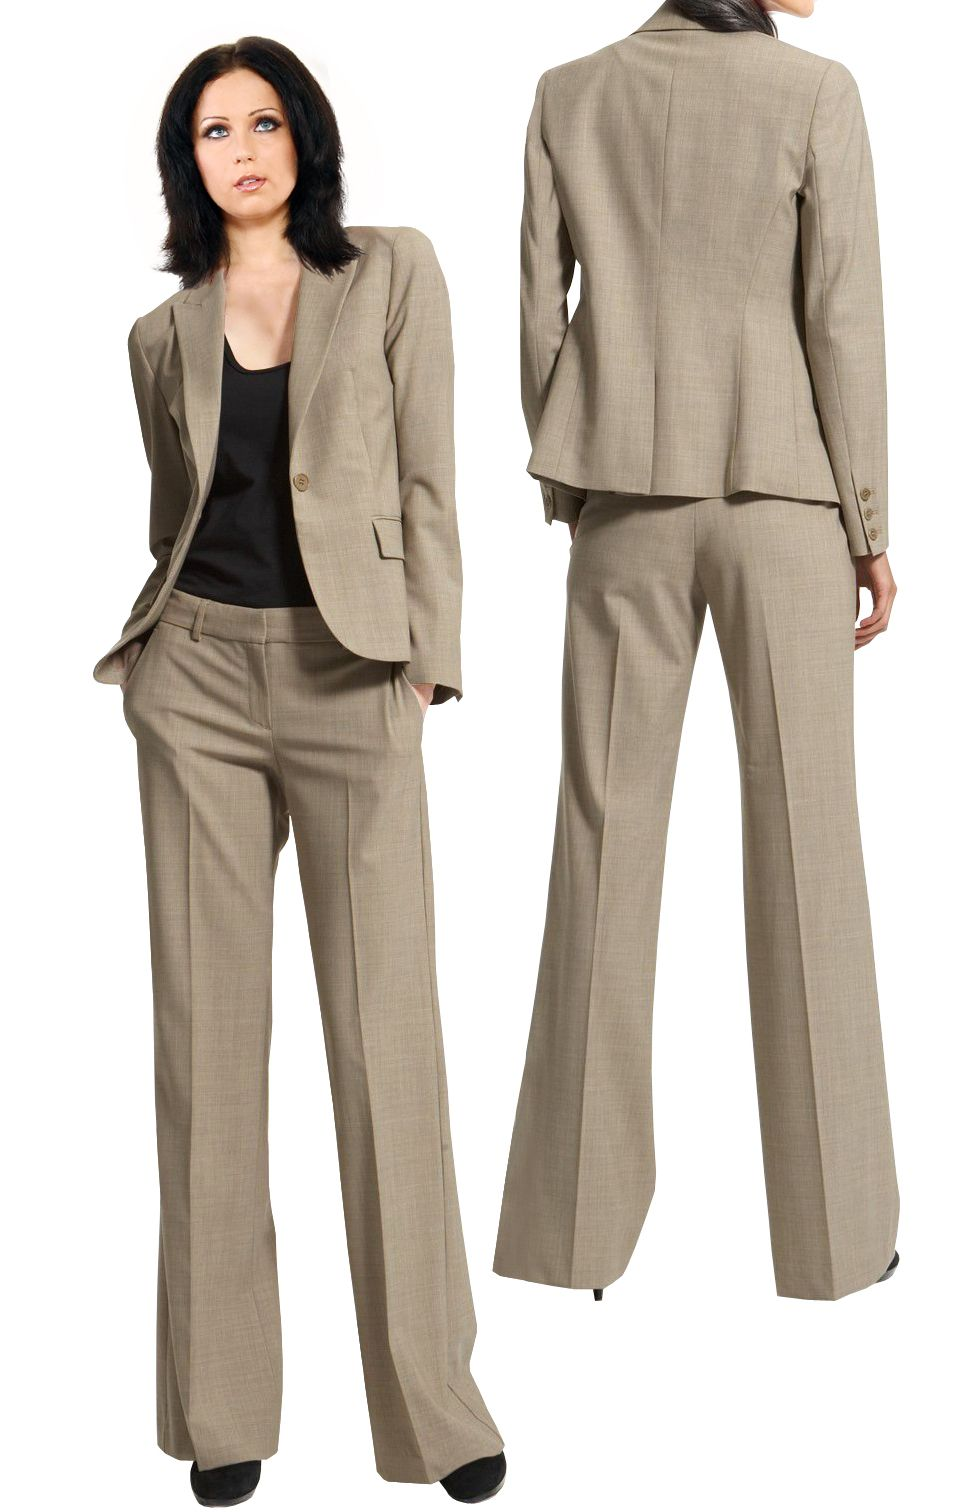 womens tailored suits | DRESSY PANT SUITS FOR WOMEN | DRESSES ...